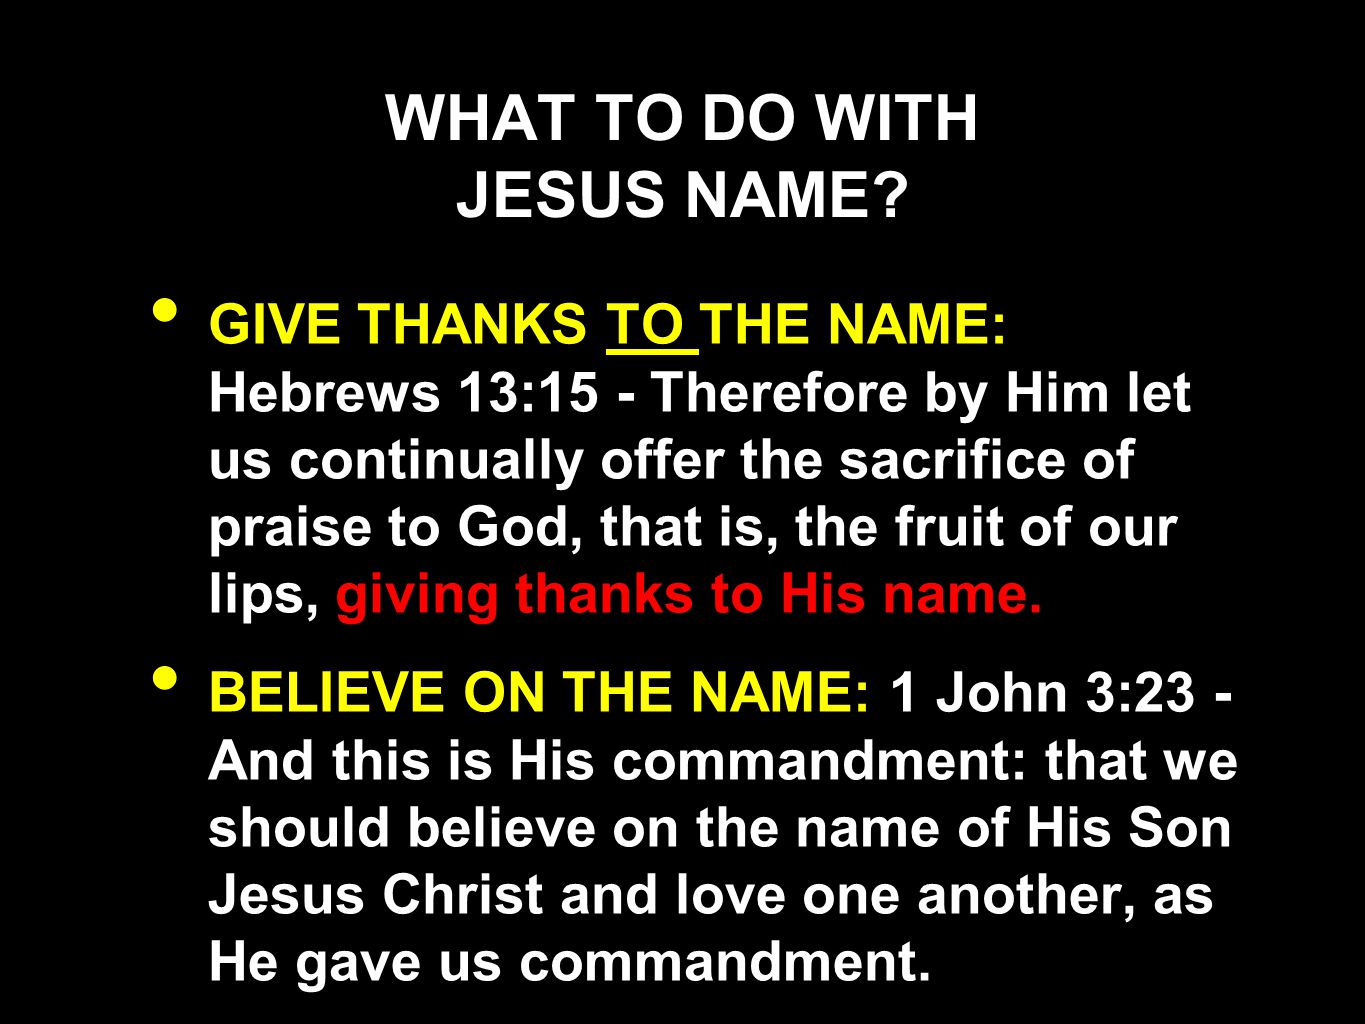 WHAT TO DO WITH JESUS NAME